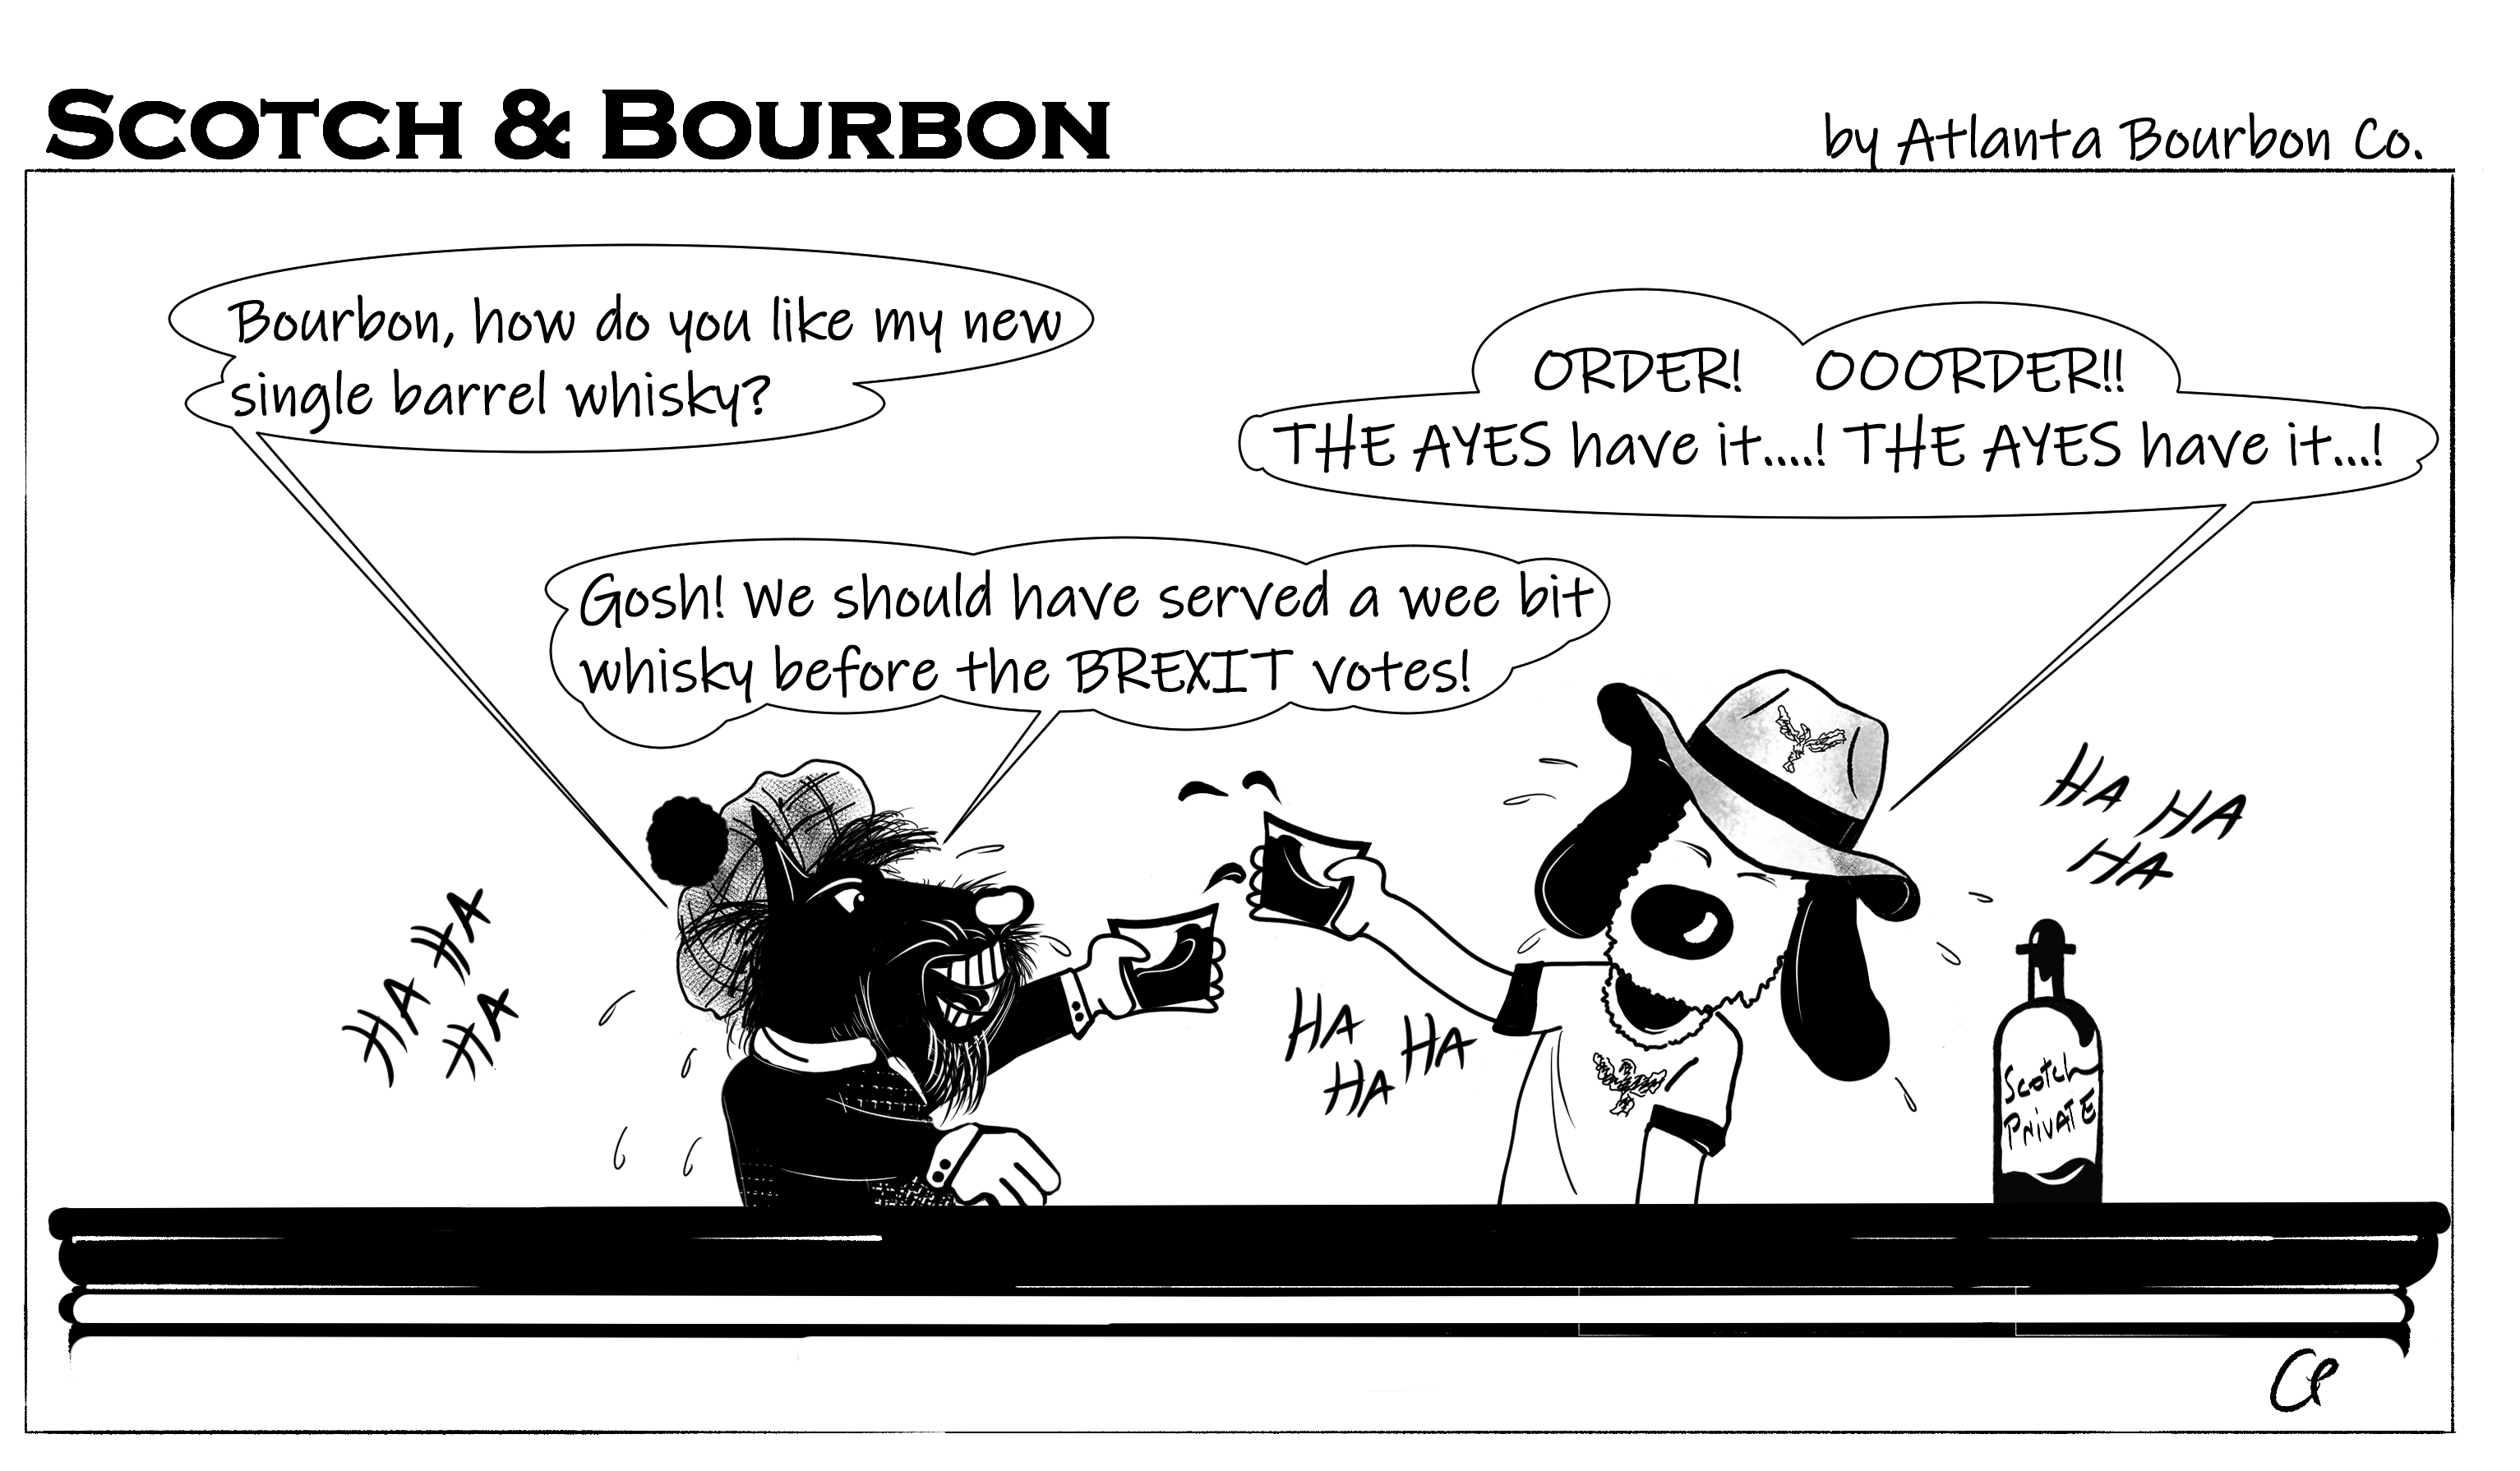 Scotch & Bourbon Cartoon: OORDER! OOORDER! #7